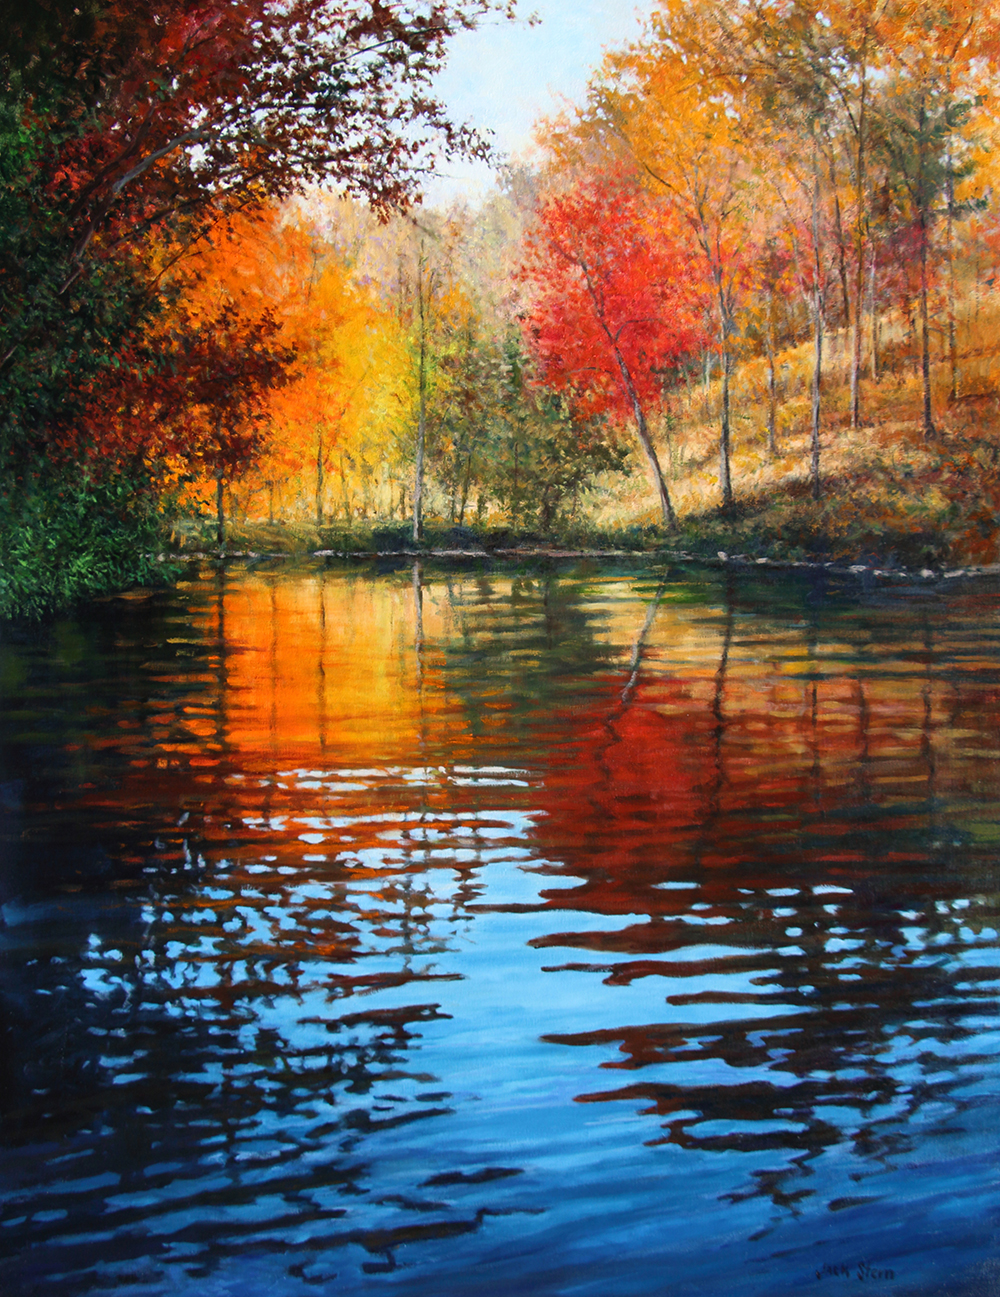 Cover_Artist_Jack_Stern_Quiet_Reflections_30x24_oil.jpg